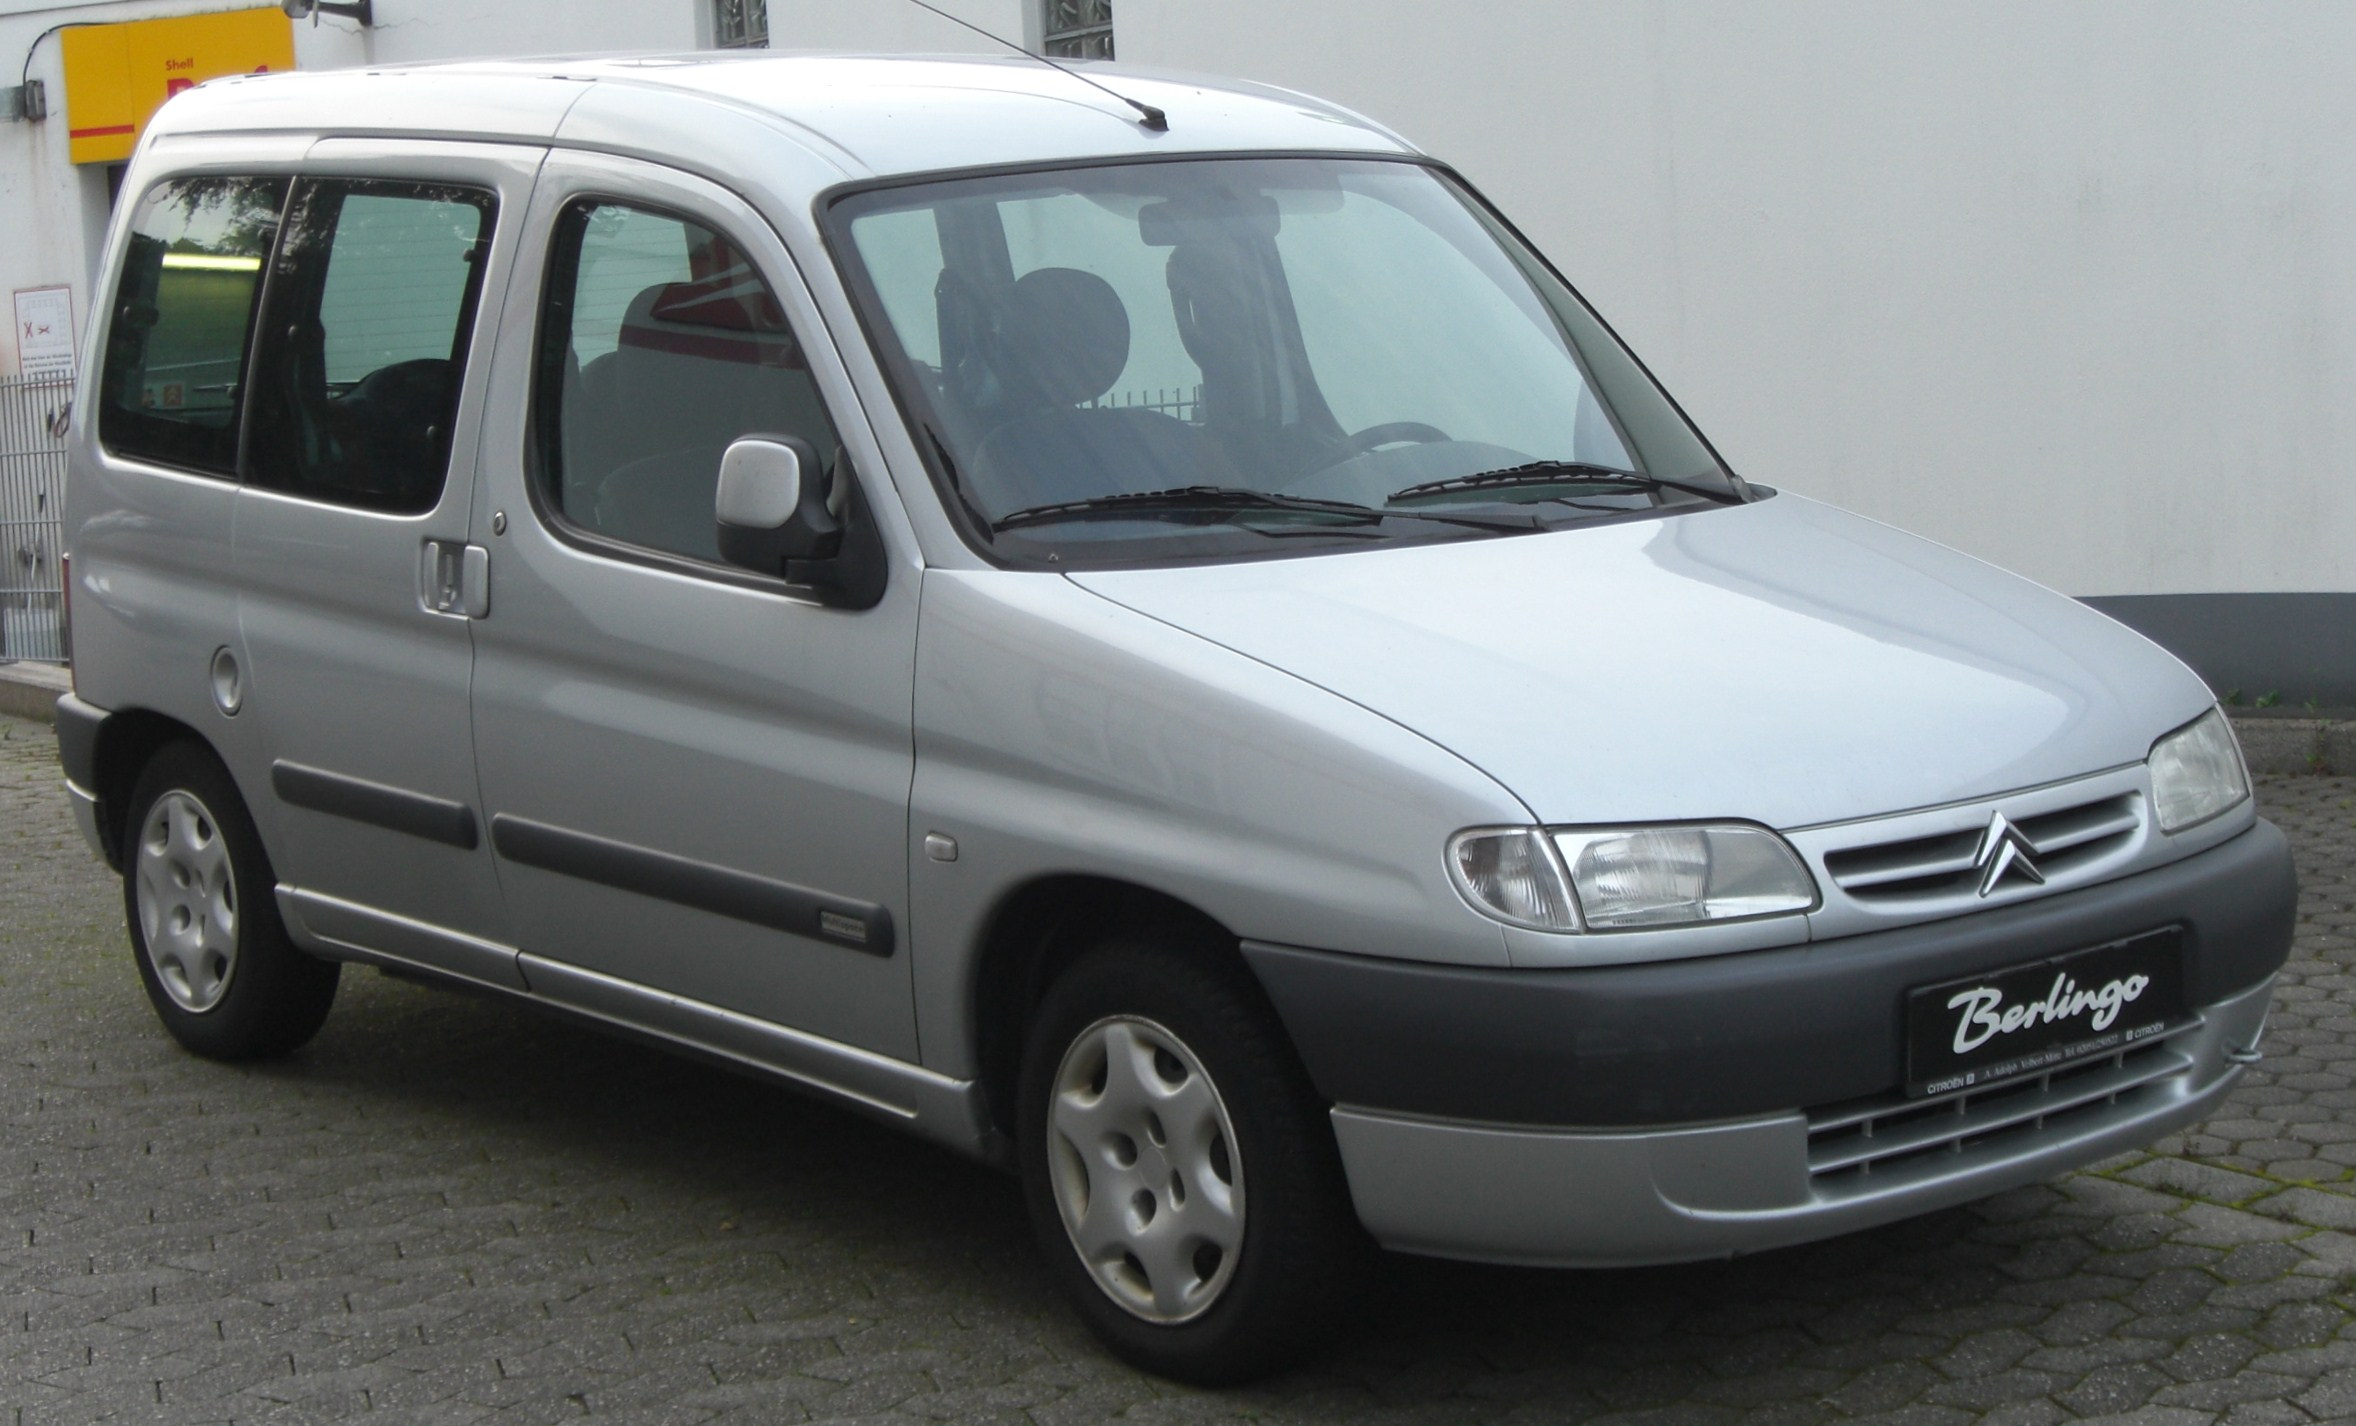 Citroen berlingo photo - 4